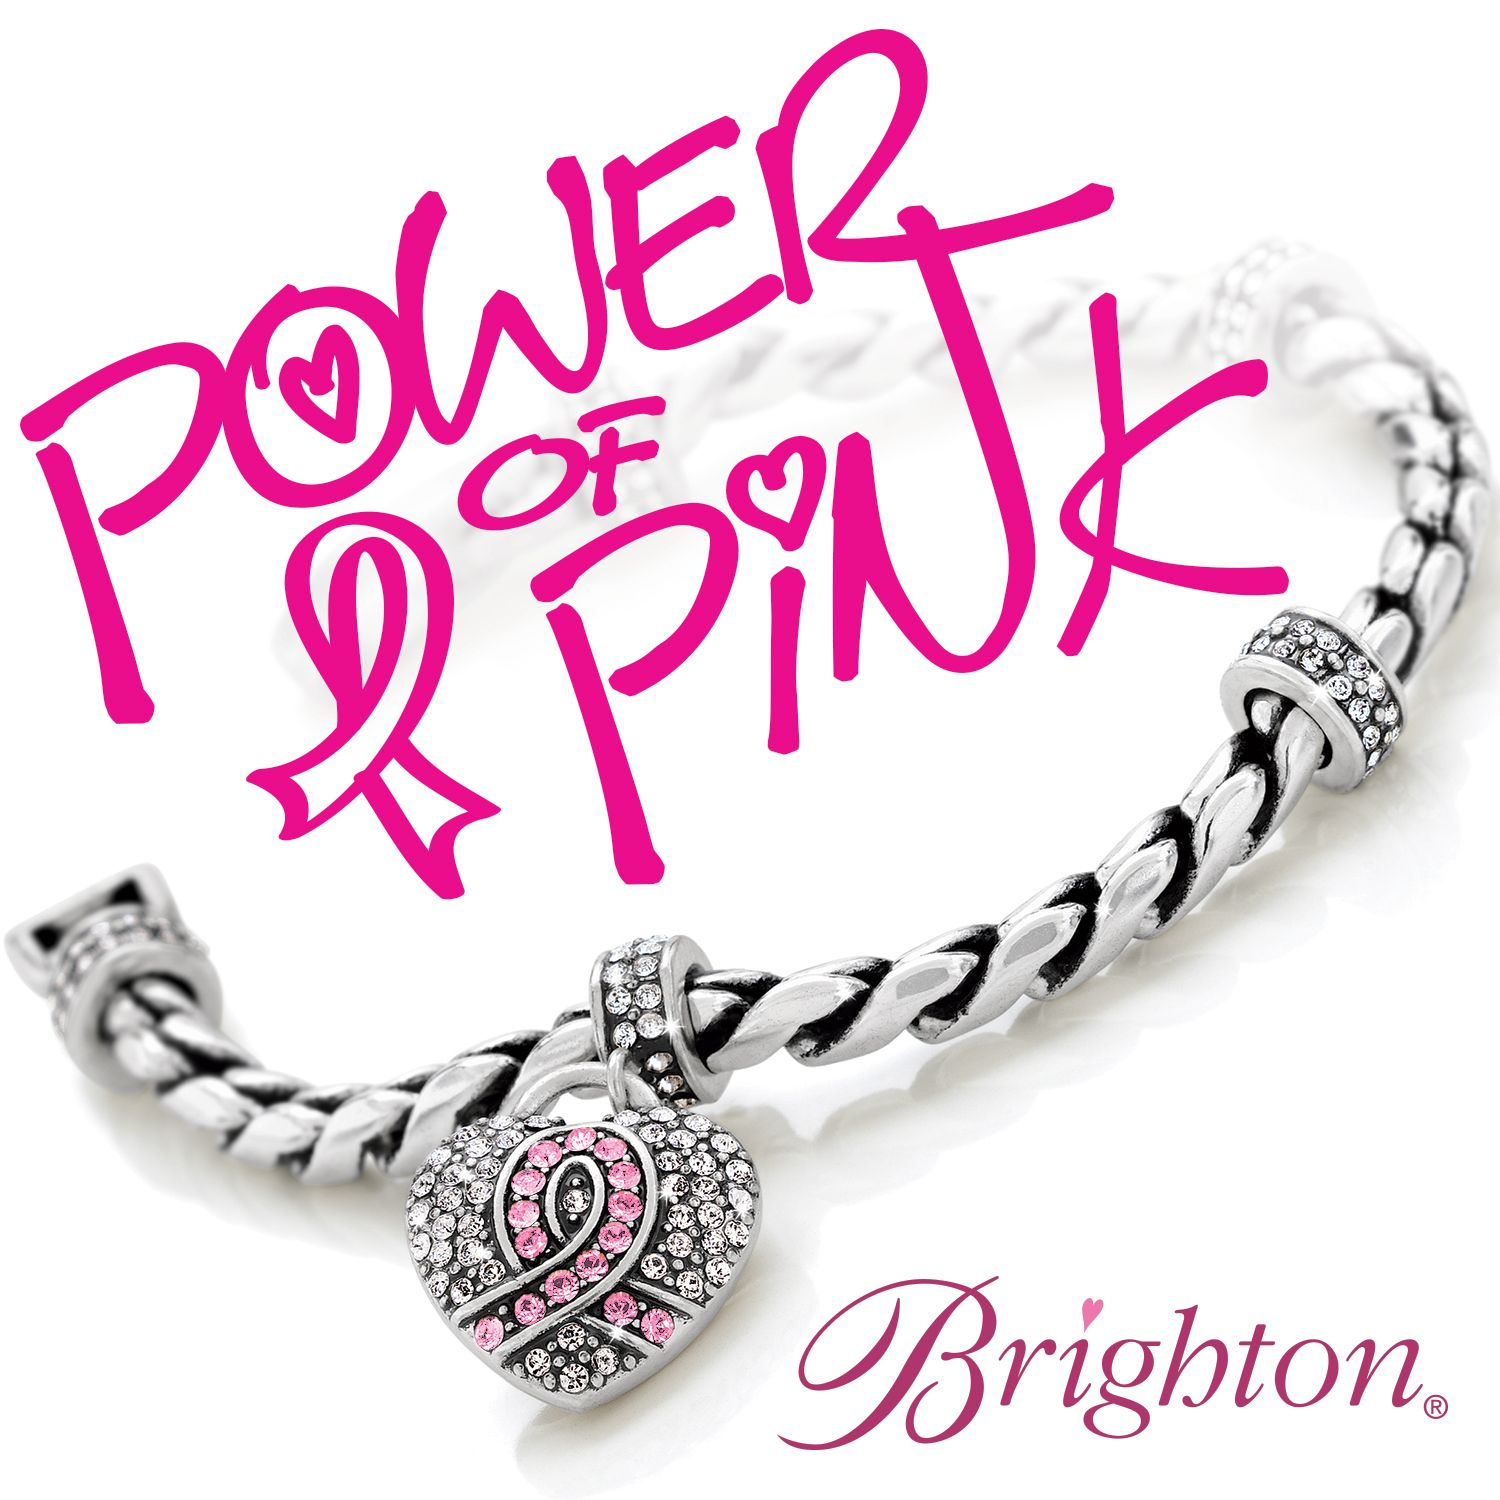 Pretty with a purpose brighton 39 s 2013 power of pink for Jewelry that supports a charity